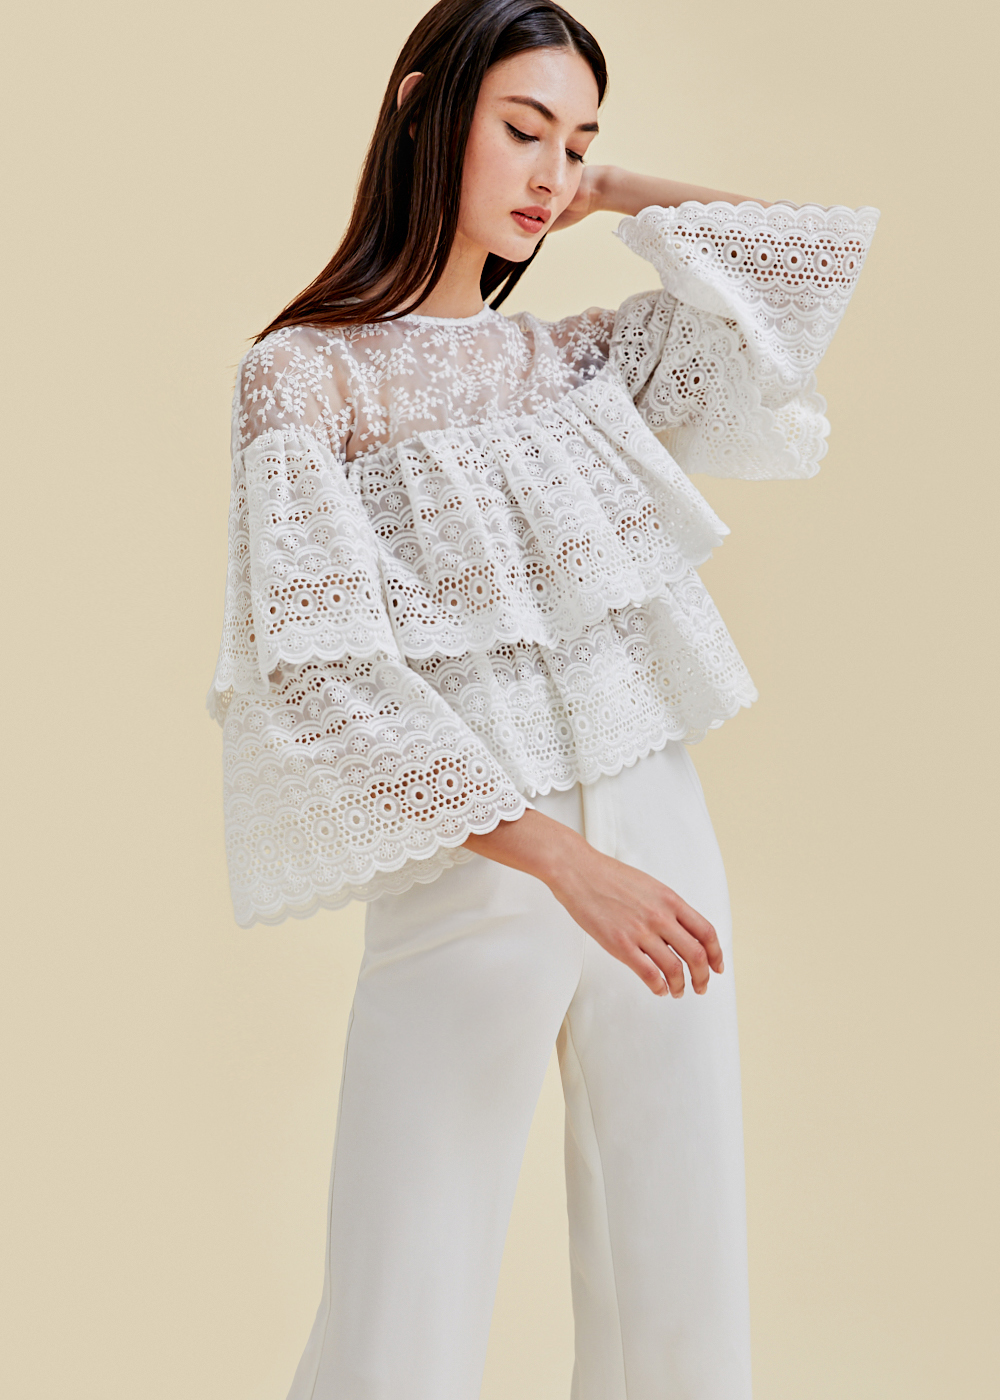 Everett Tiered Broderie Anglaise Top